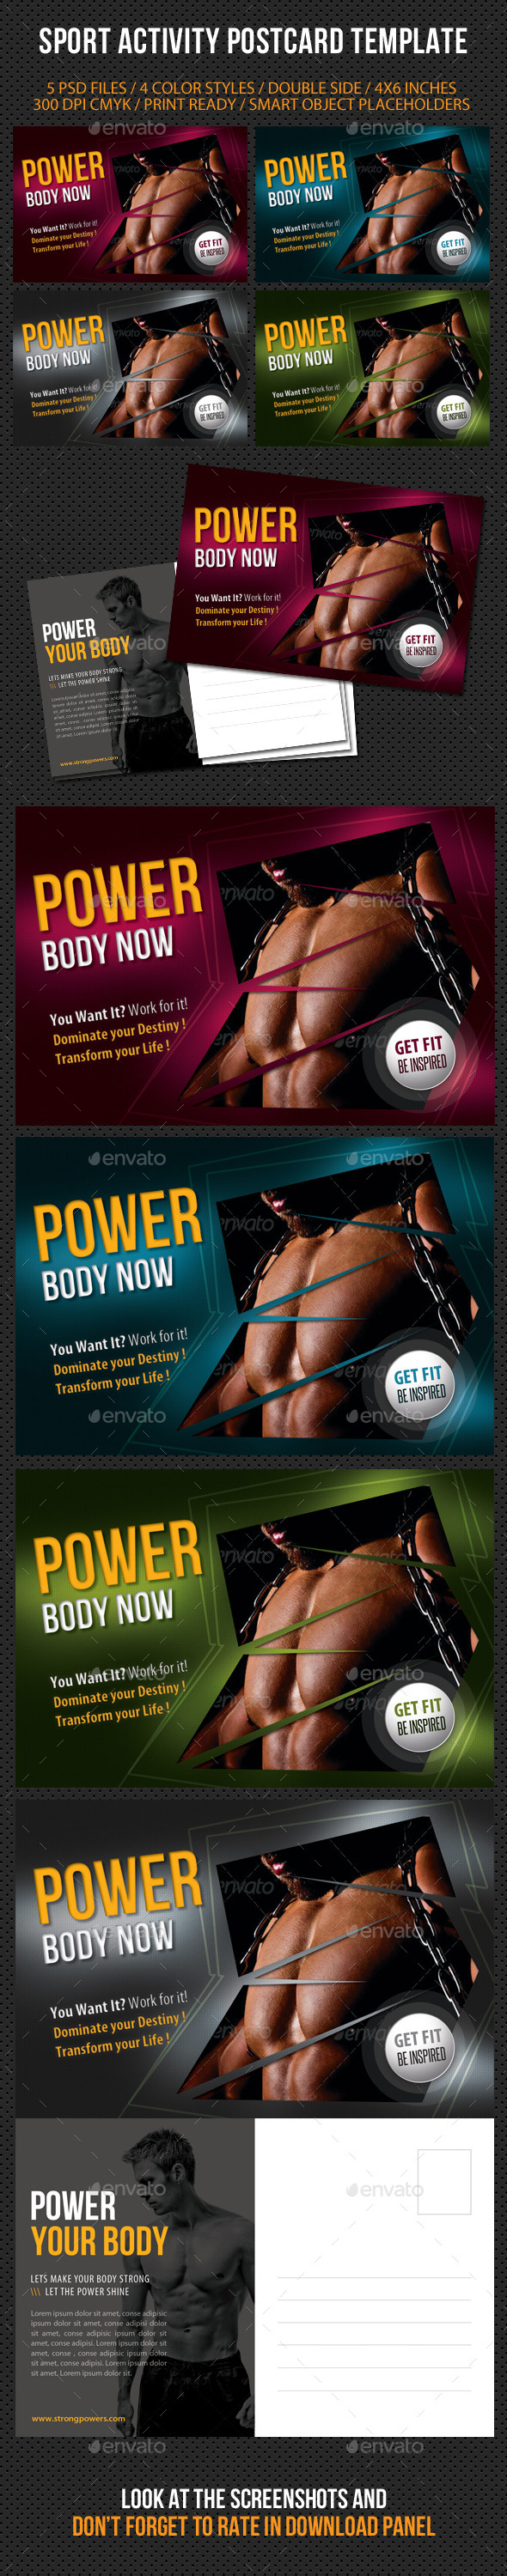 GraphicRiver Sport Activity Postcard Template V03 9222577